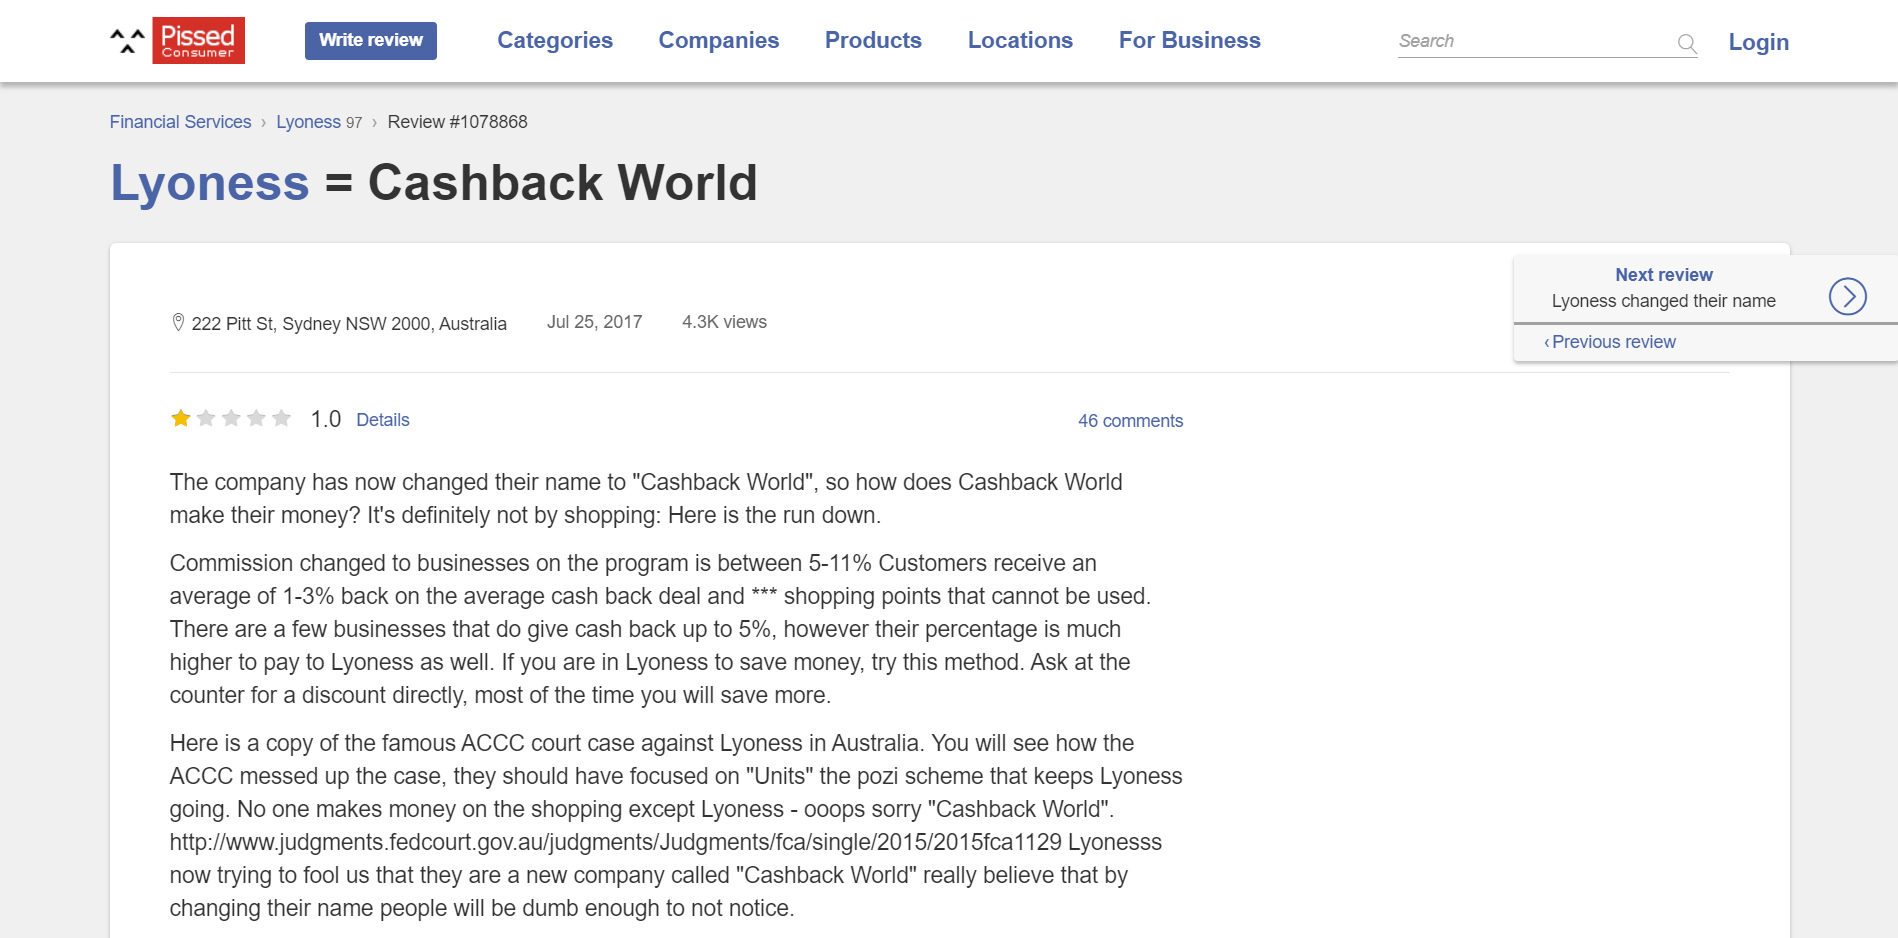 Other Cashback World review